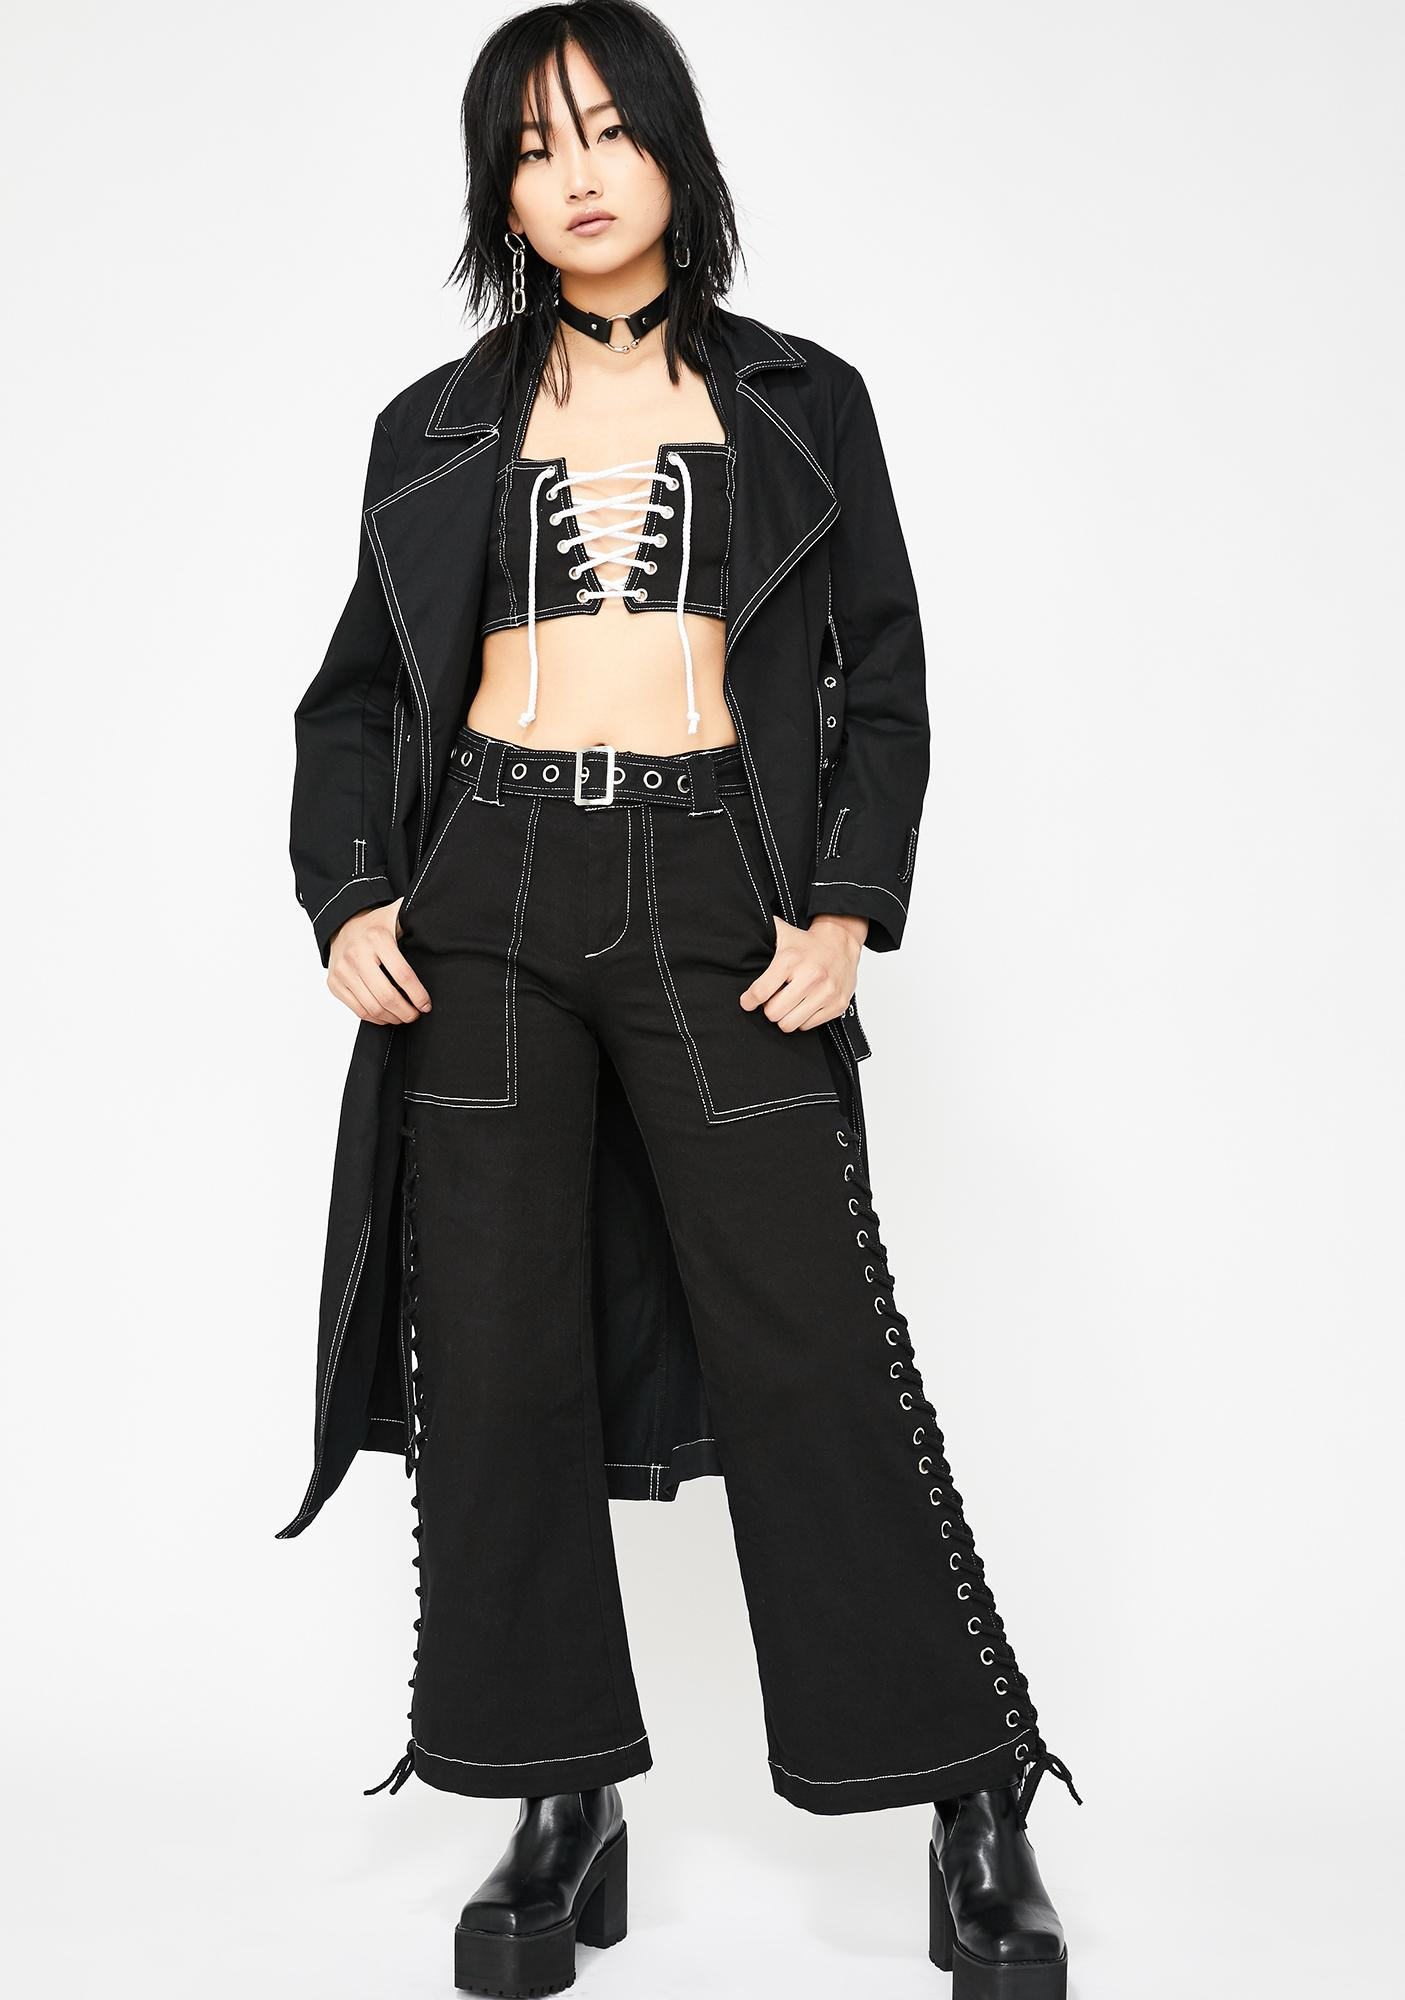 Current Mood Street Drifter Lace-Up Top